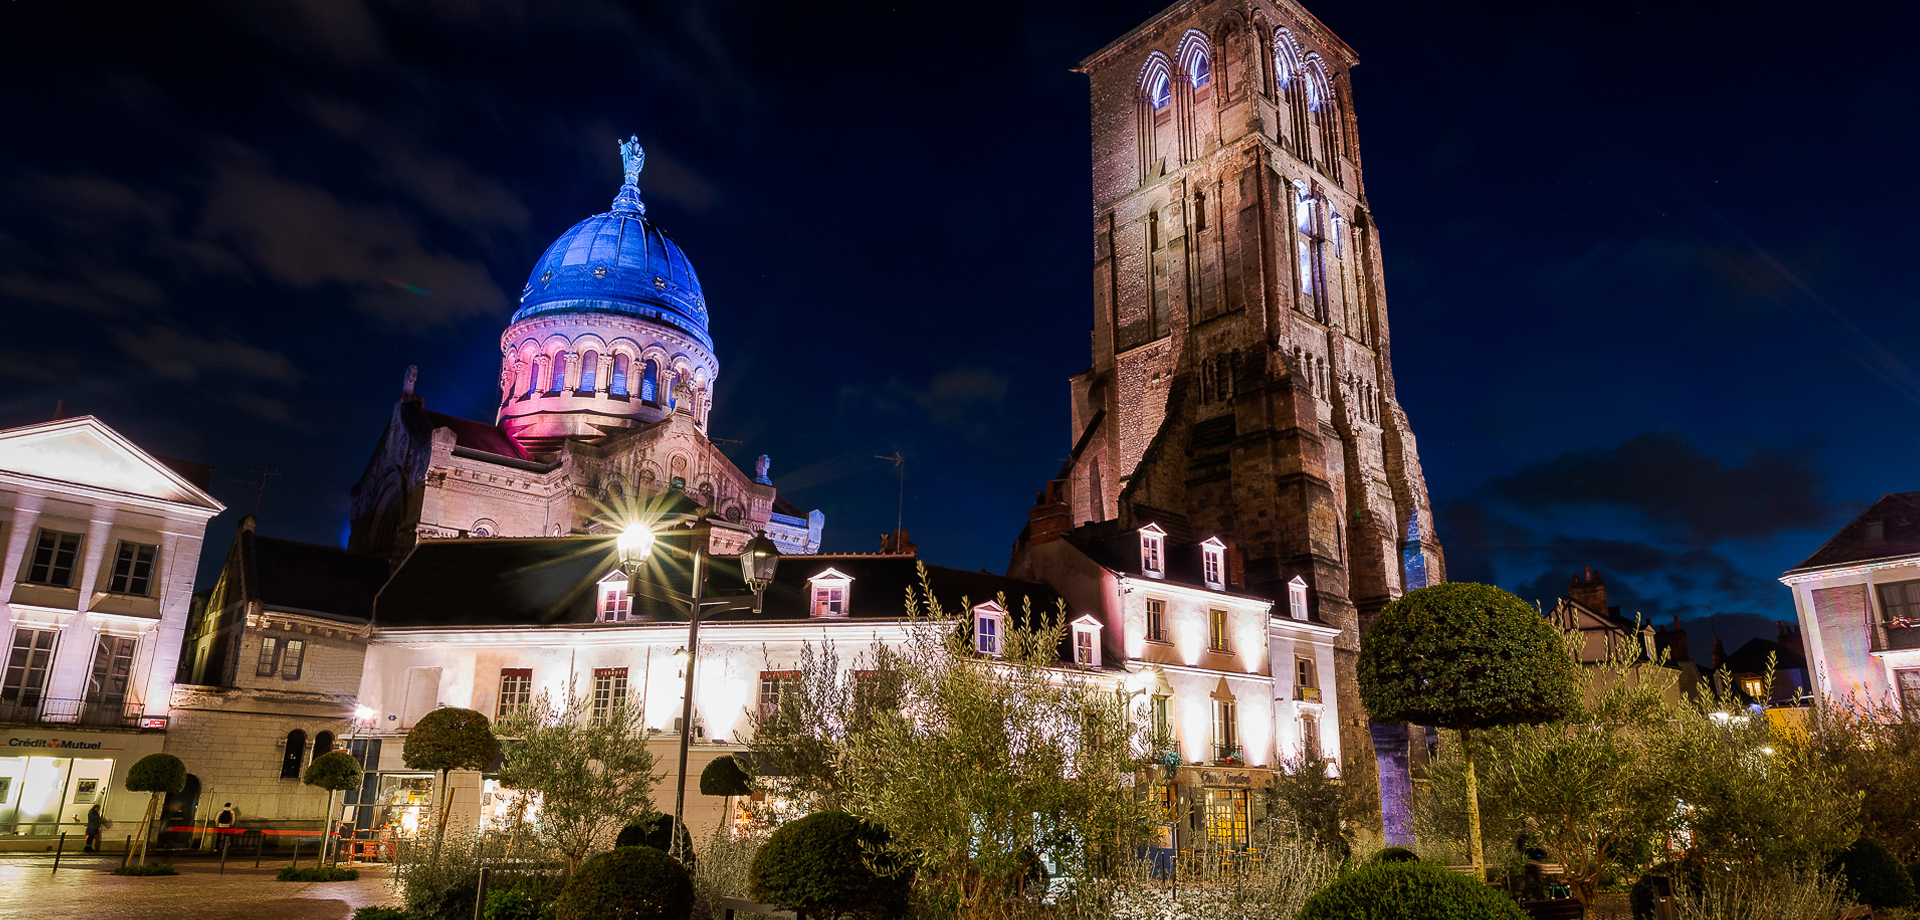 Saint Martin Basilica in Tours, beside the Charlemagne Tower. Way of Saint-James, from Tours to santiago de compostela on a Jacobean year.